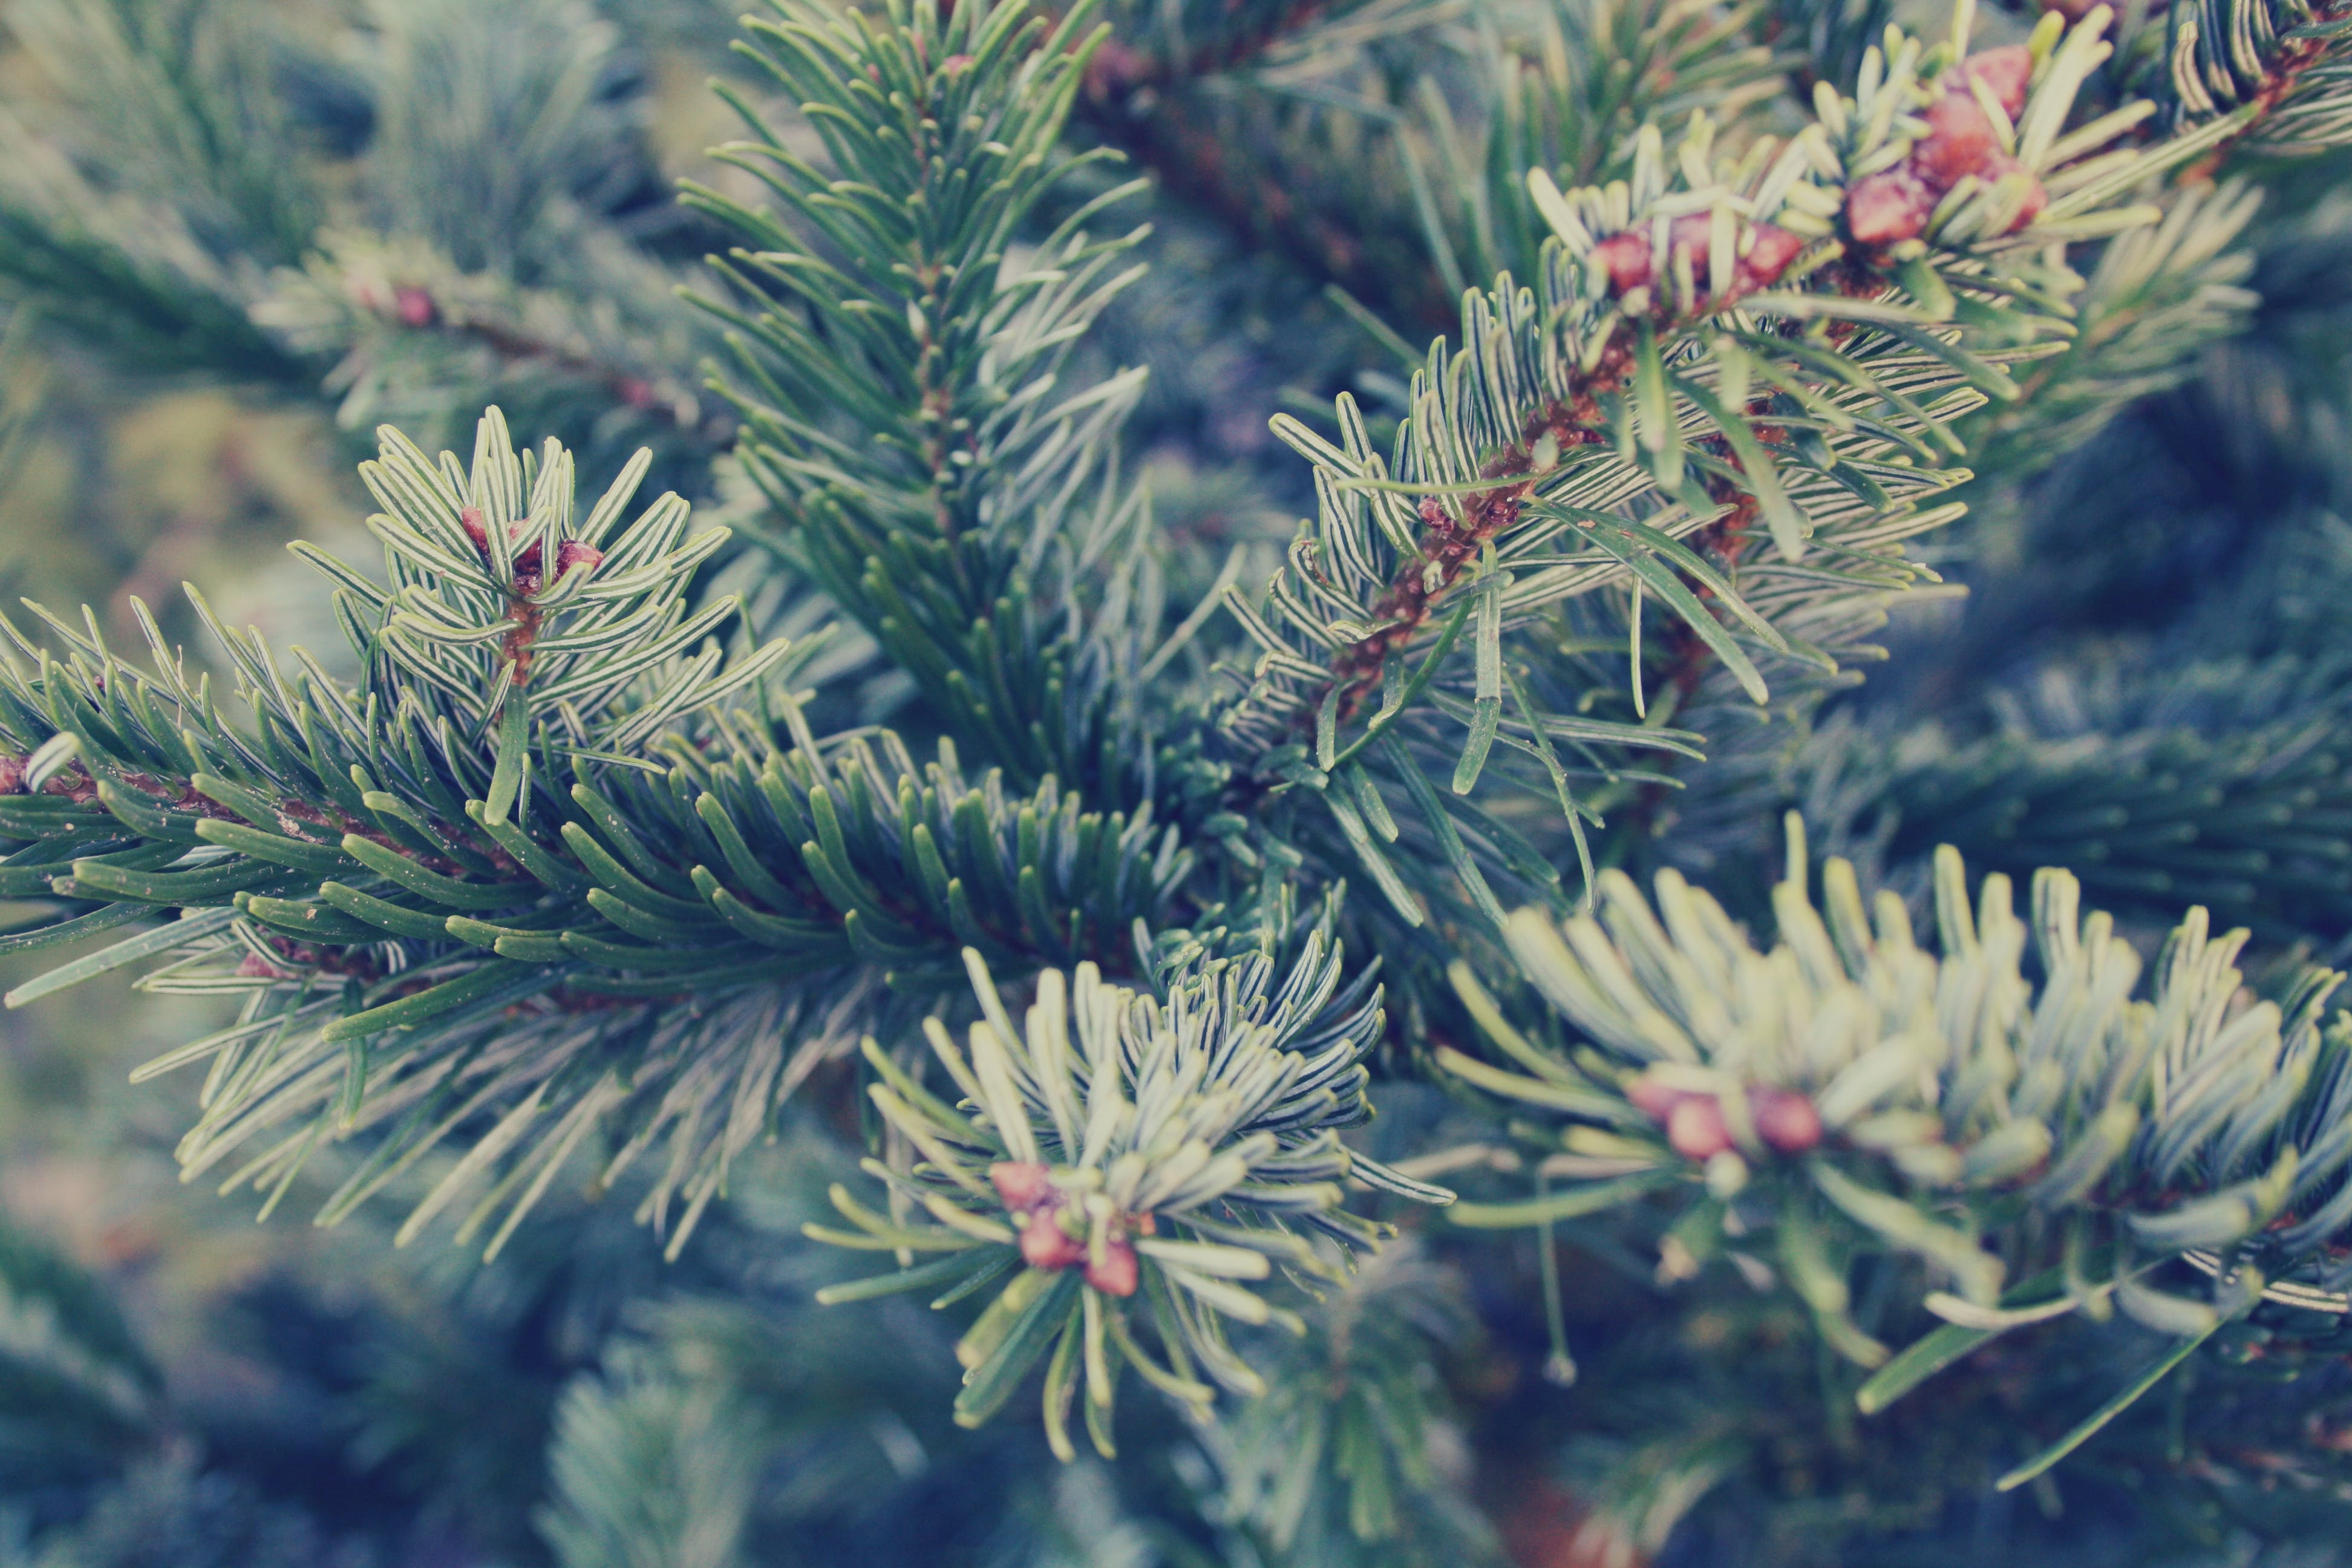 Free stock photo of #spruce